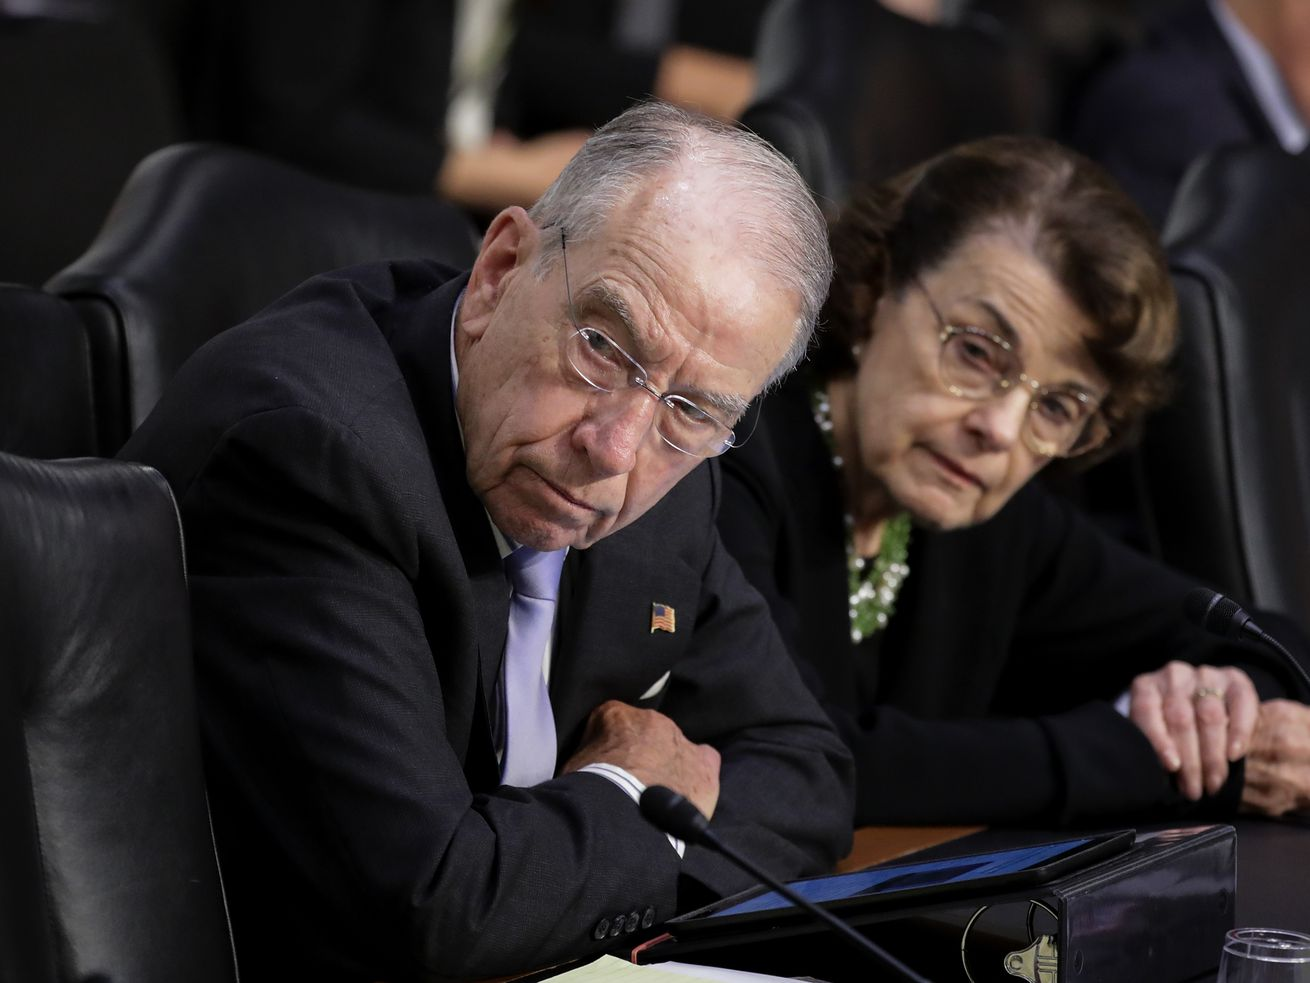 Sens. Chuck Grassley (R-IA) and Dianne Feinstein (D-CA) listen as Supreme Court nominee Brett Kavanaugh testifies before the Senate Judiciary Committee.